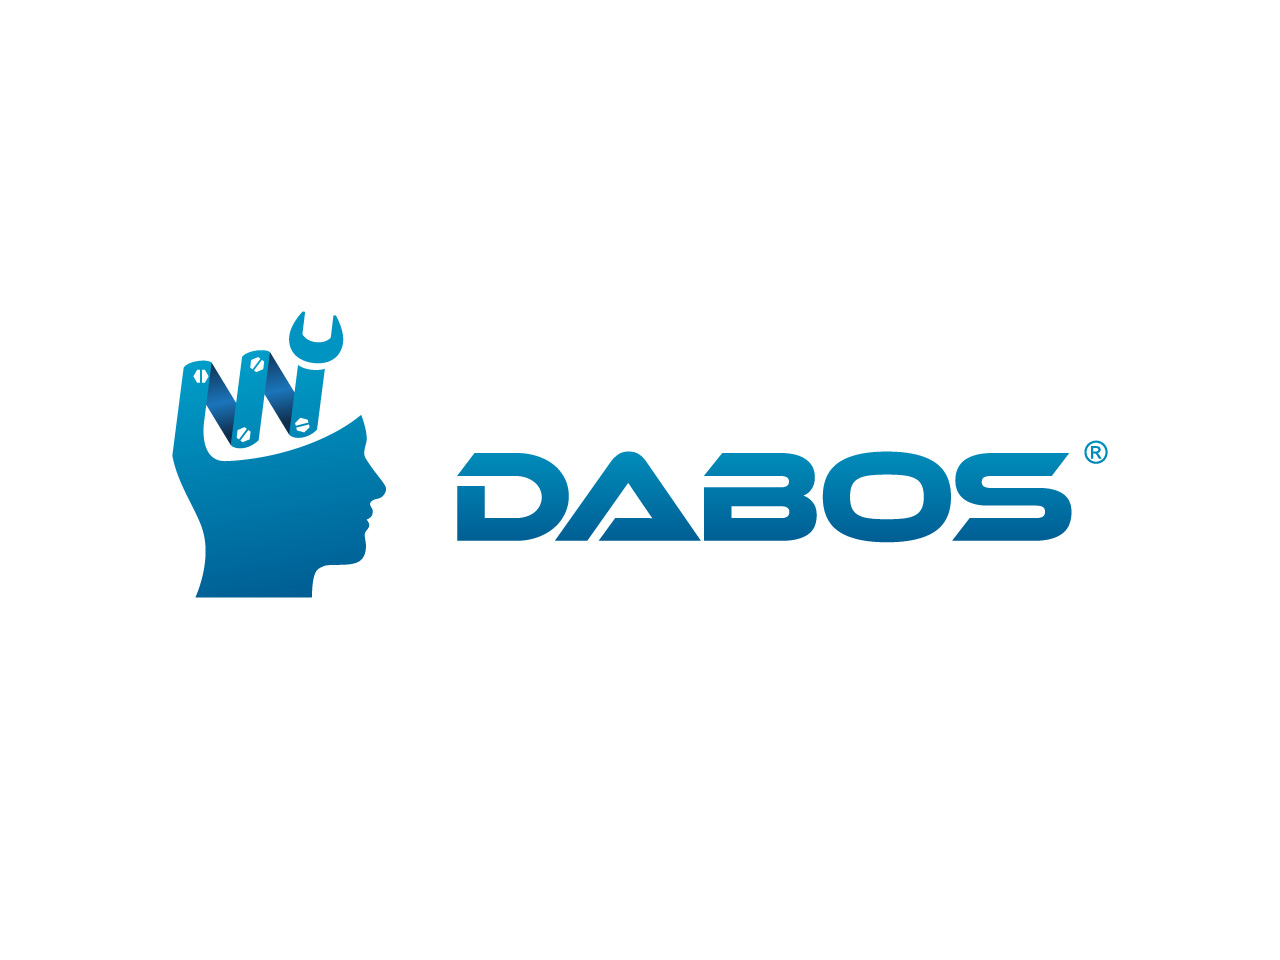 Logo Design by jpbituin - Entry No. 130 in the Logo Design Contest Imaginative Logo Design for DABOS, Limited Liability Company.